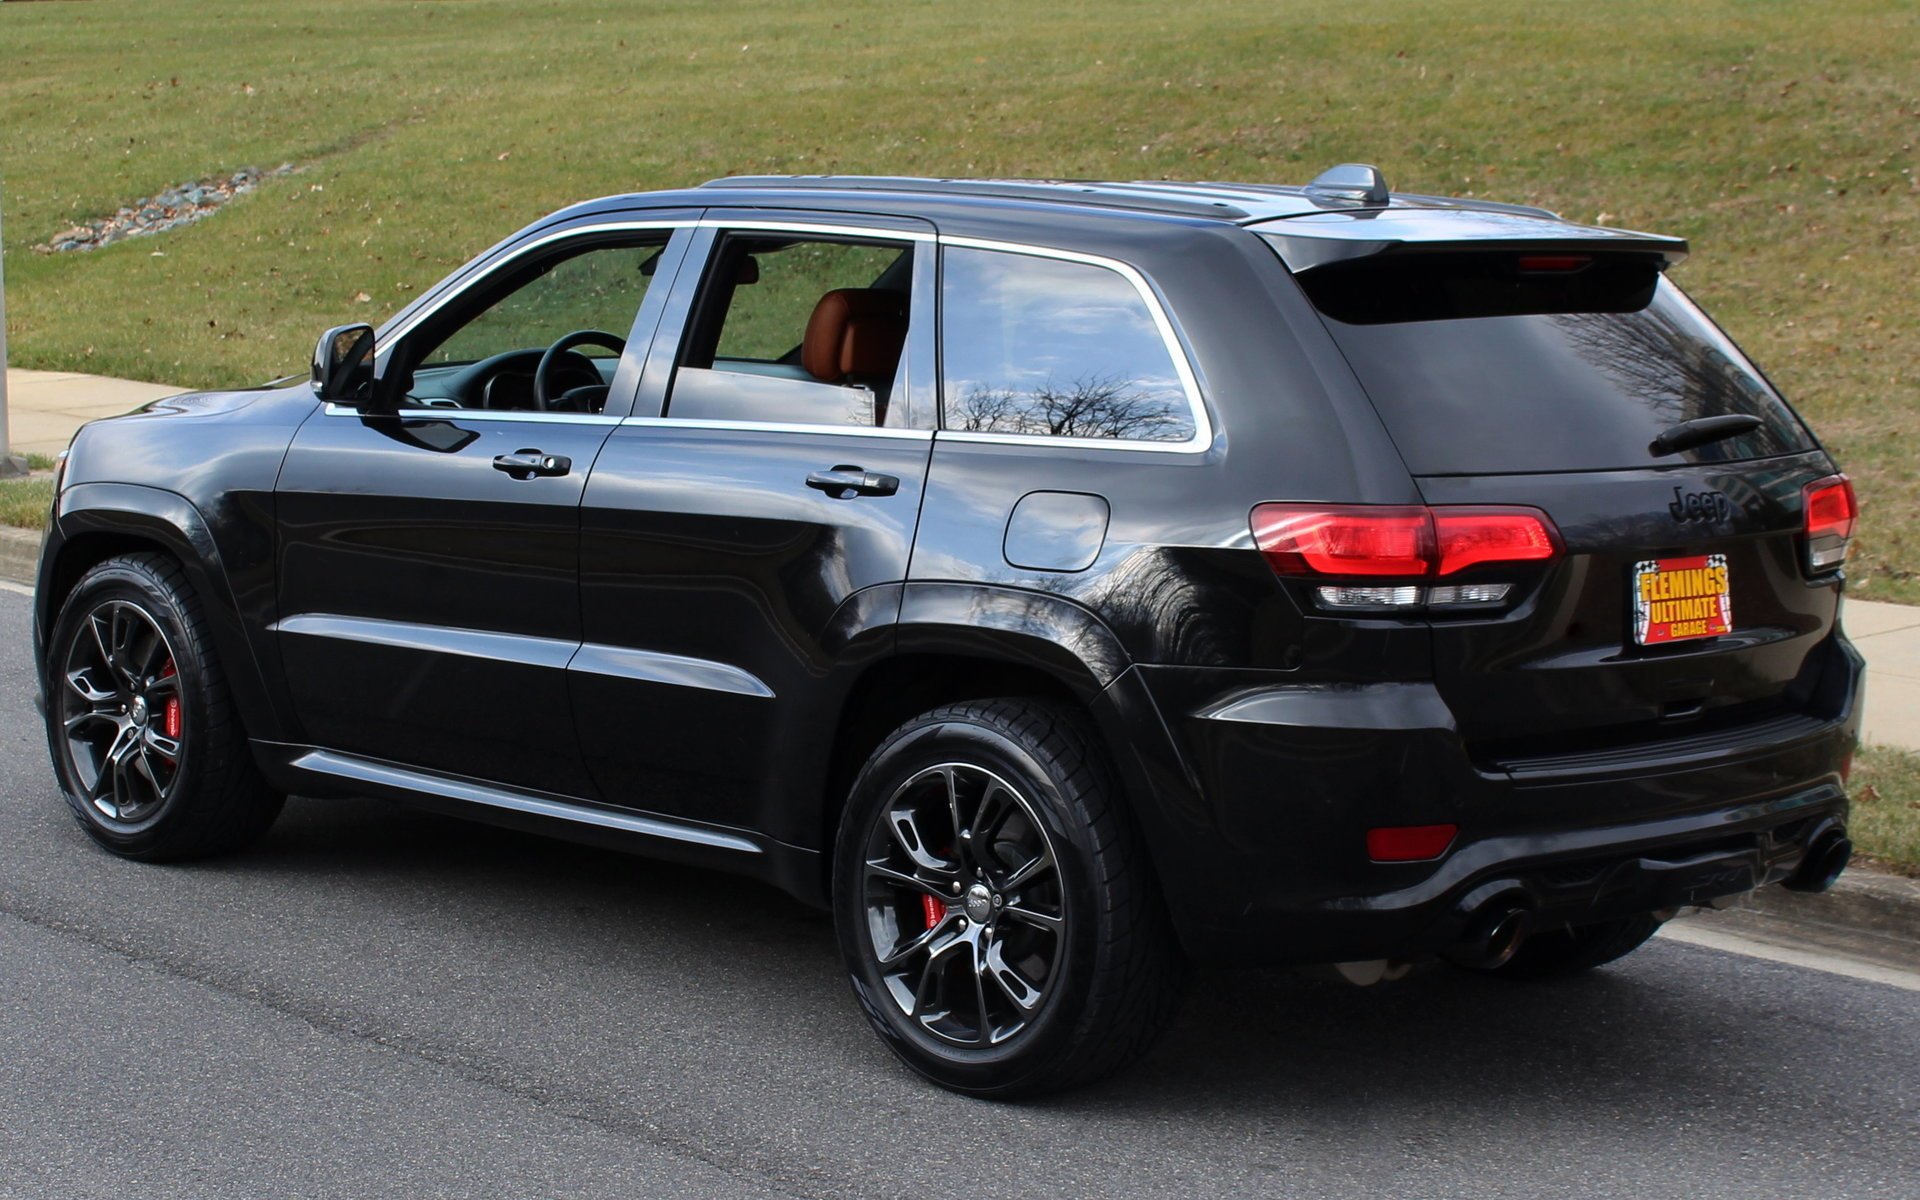 2014 jeep grand cherokee srt 8 for sale 76692 mcg. Black Bedroom Furniture Sets. Home Design Ideas